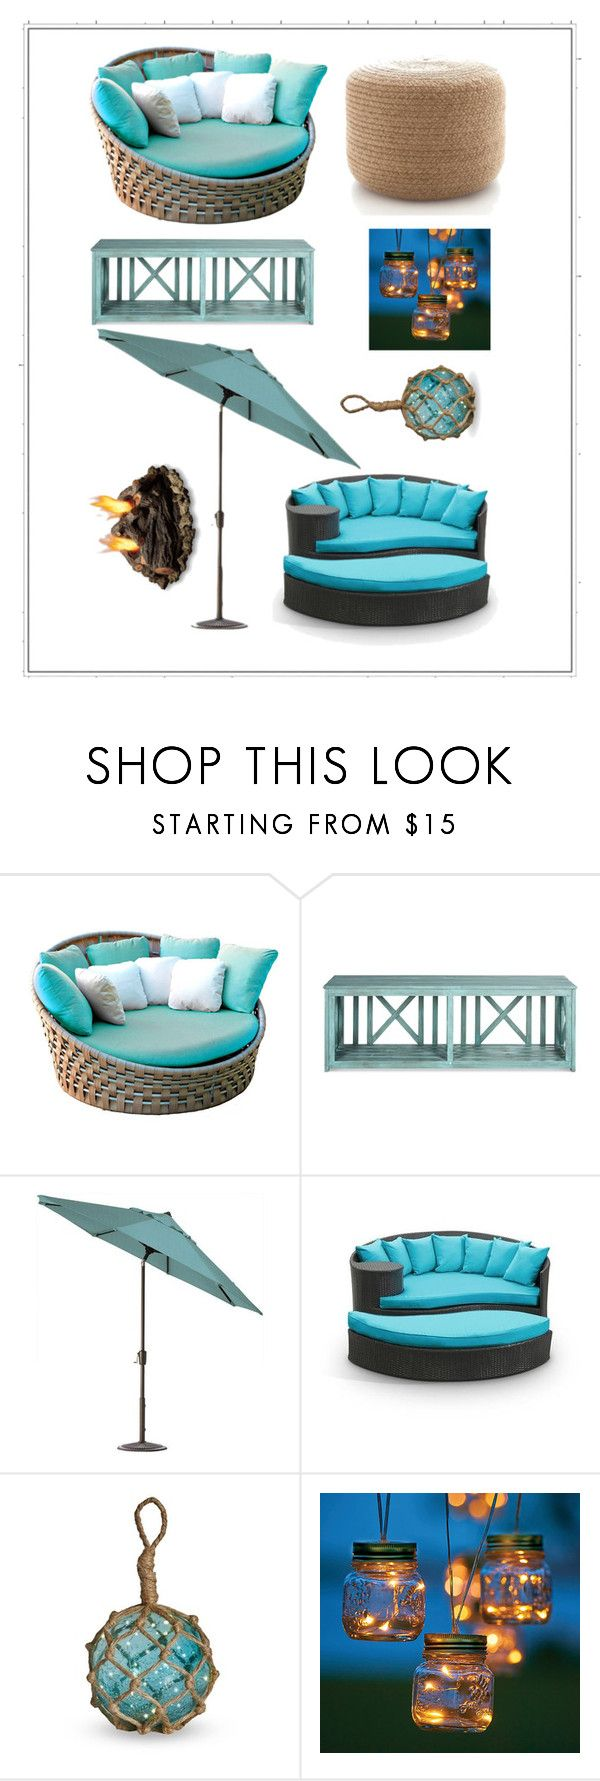 """""""Blue Outdoors"""" by julia3214 ❤ liked on Polyvore featuring interior, interiors, interior design, home, home decor, interior decorating, Skyline, Home Decorators Collection, Shoreline and Improvements"""